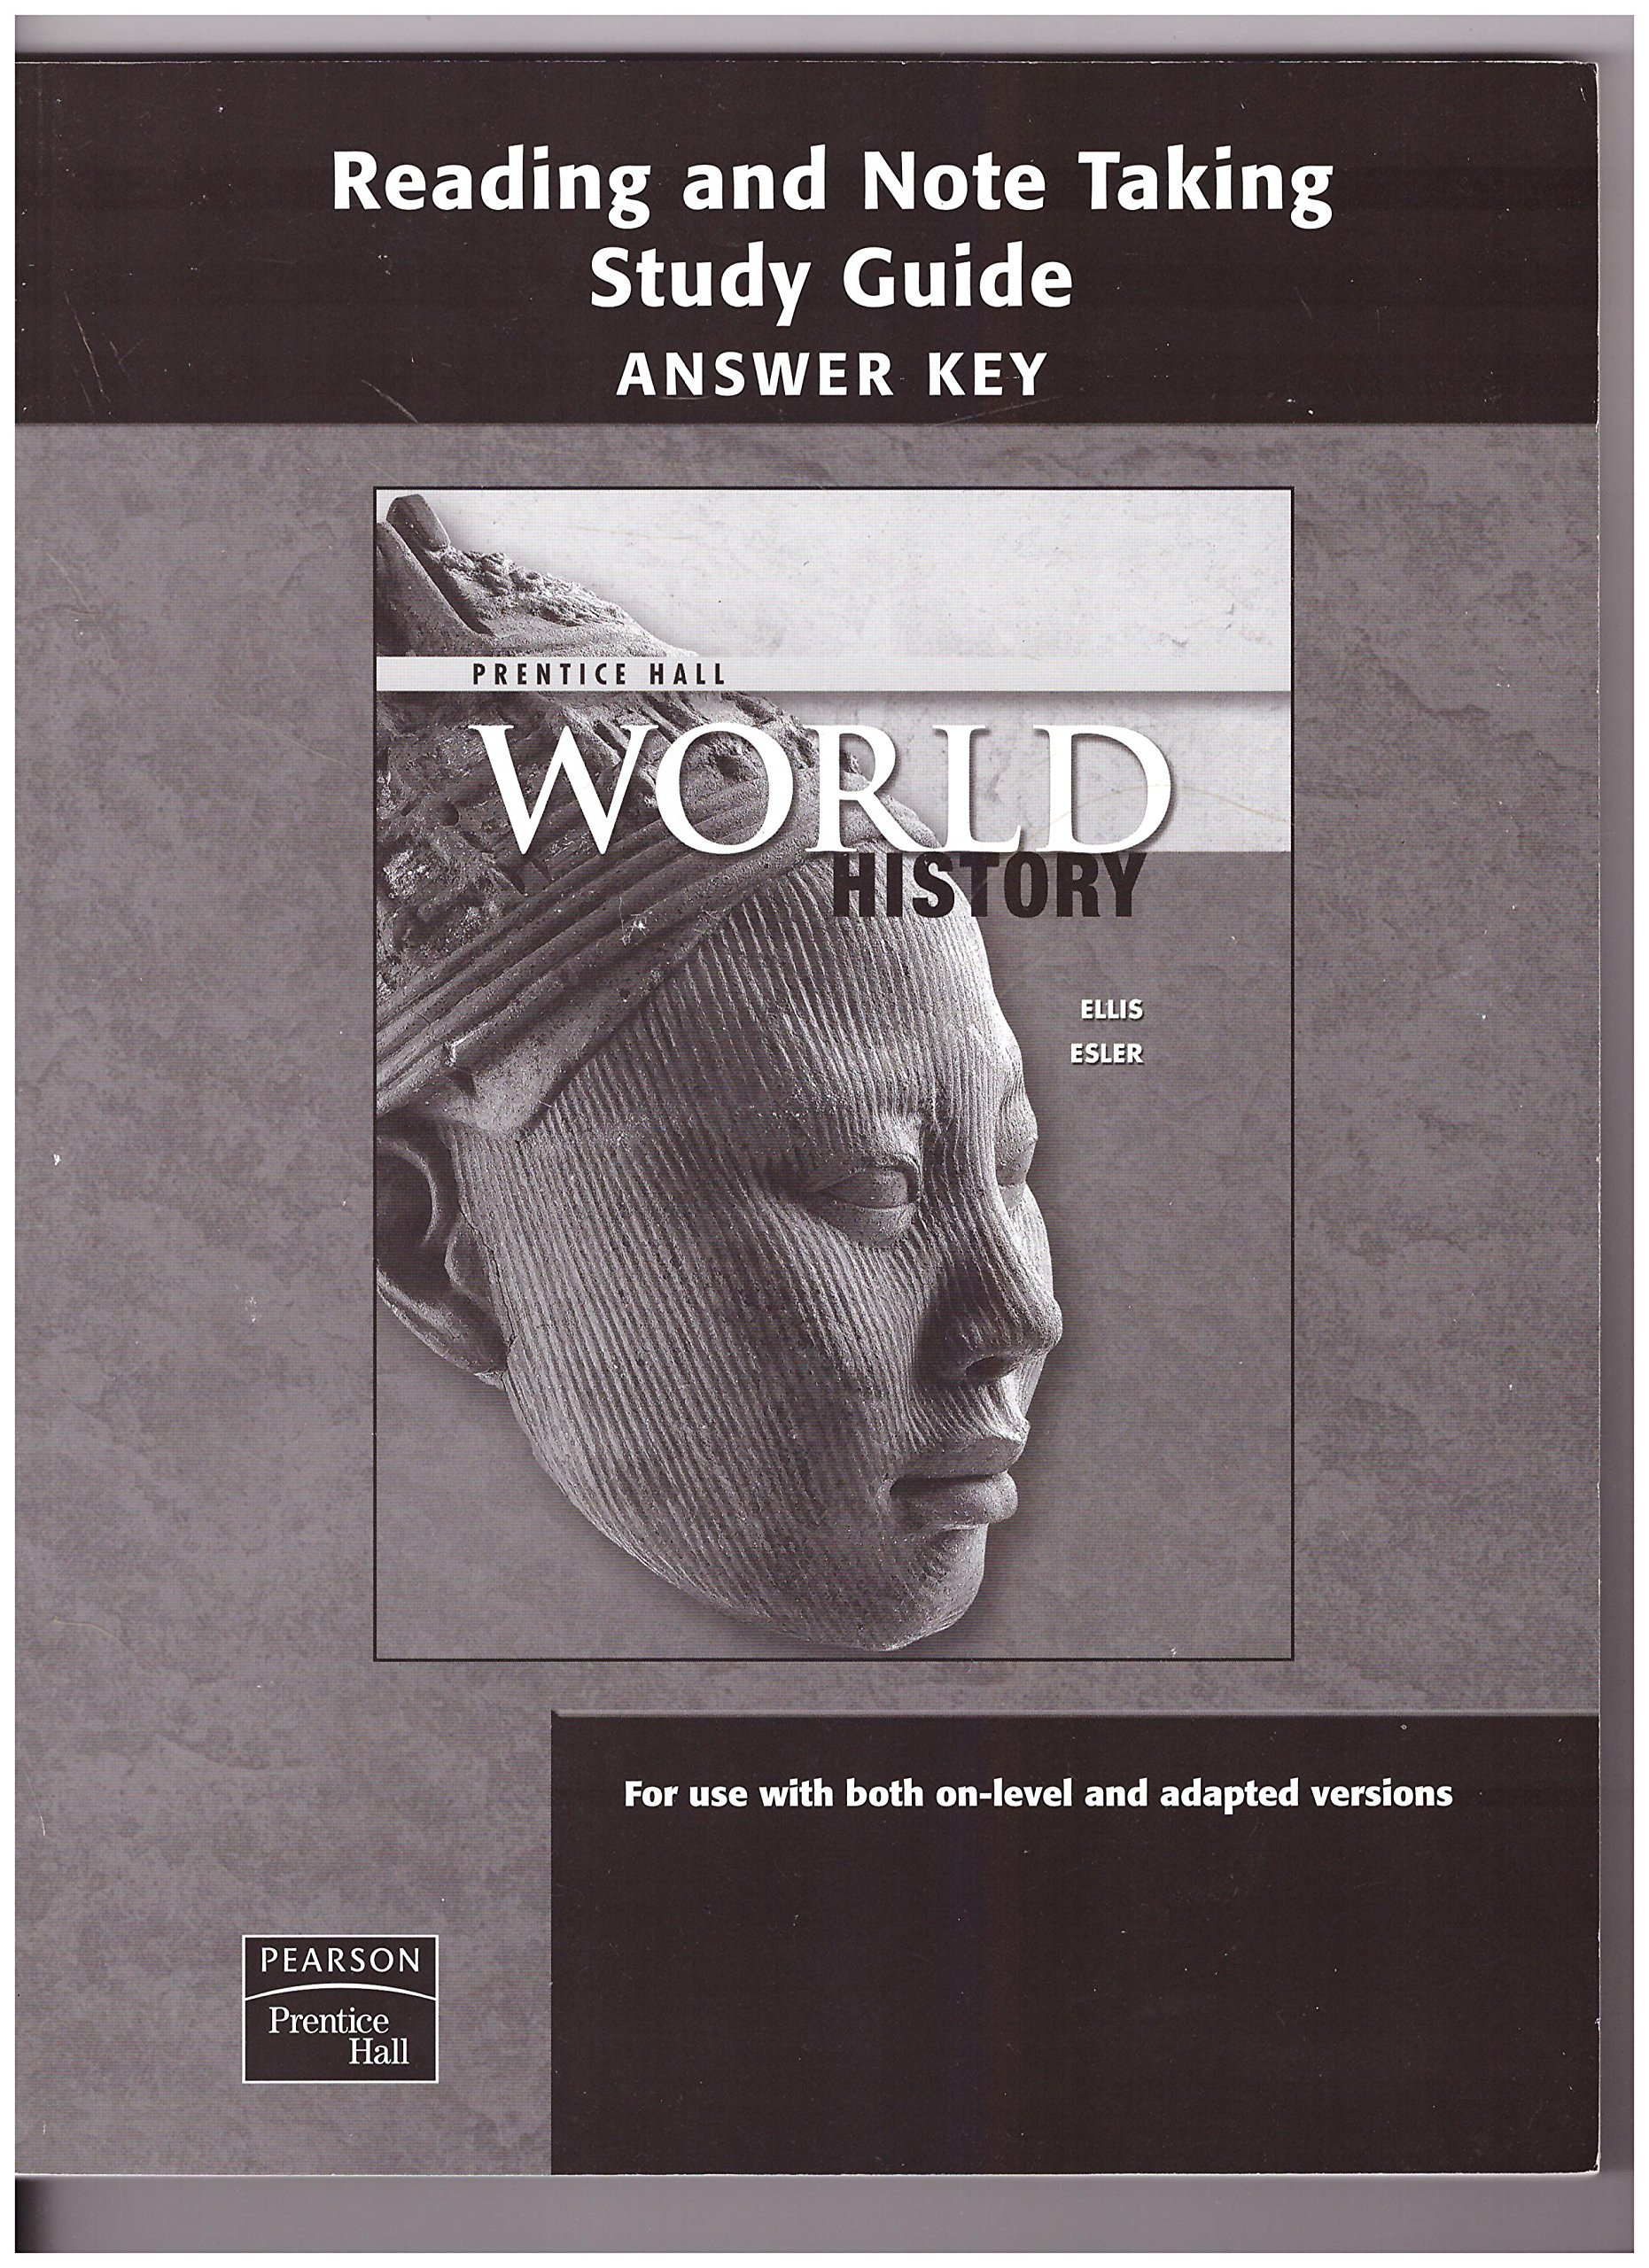 Prentice Hall World History Worksheets Prentice Hall Reading and Note Taking Study Guide Answer